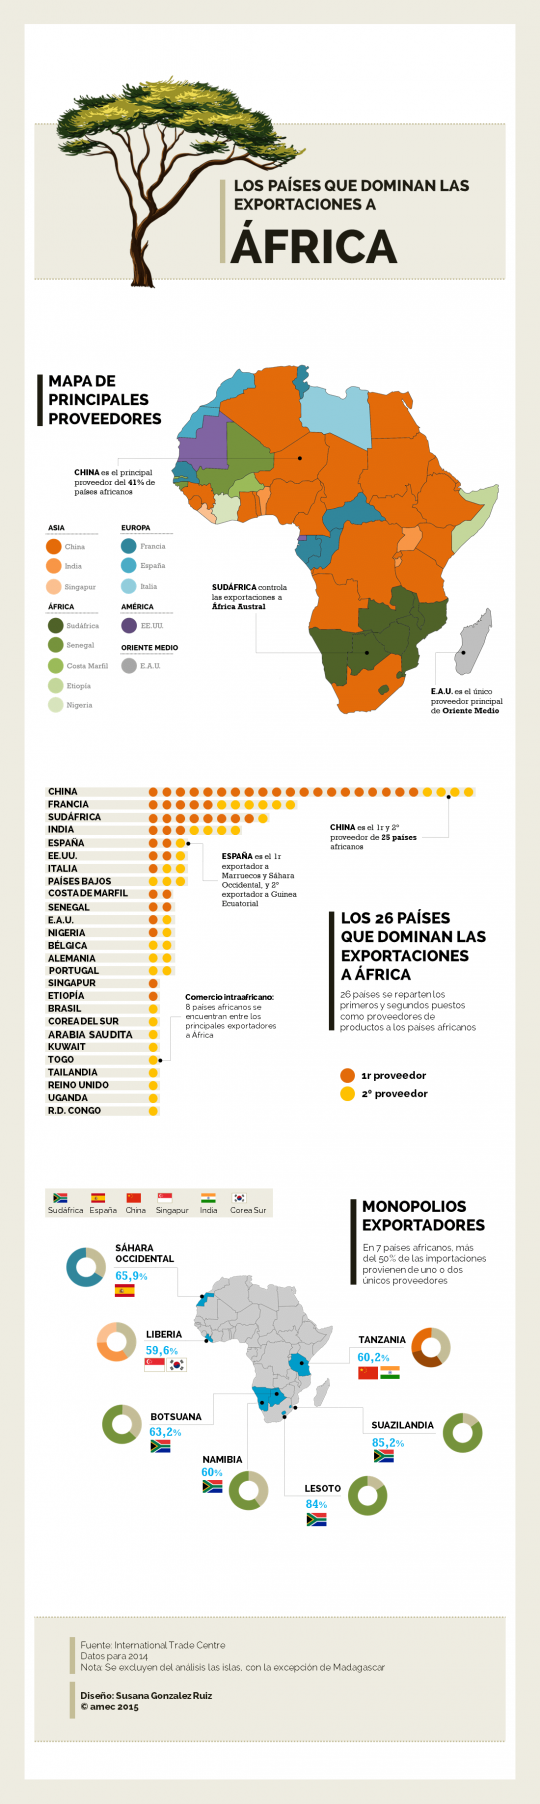 Which Countries Dominate Exports to Africa? (Spanish)